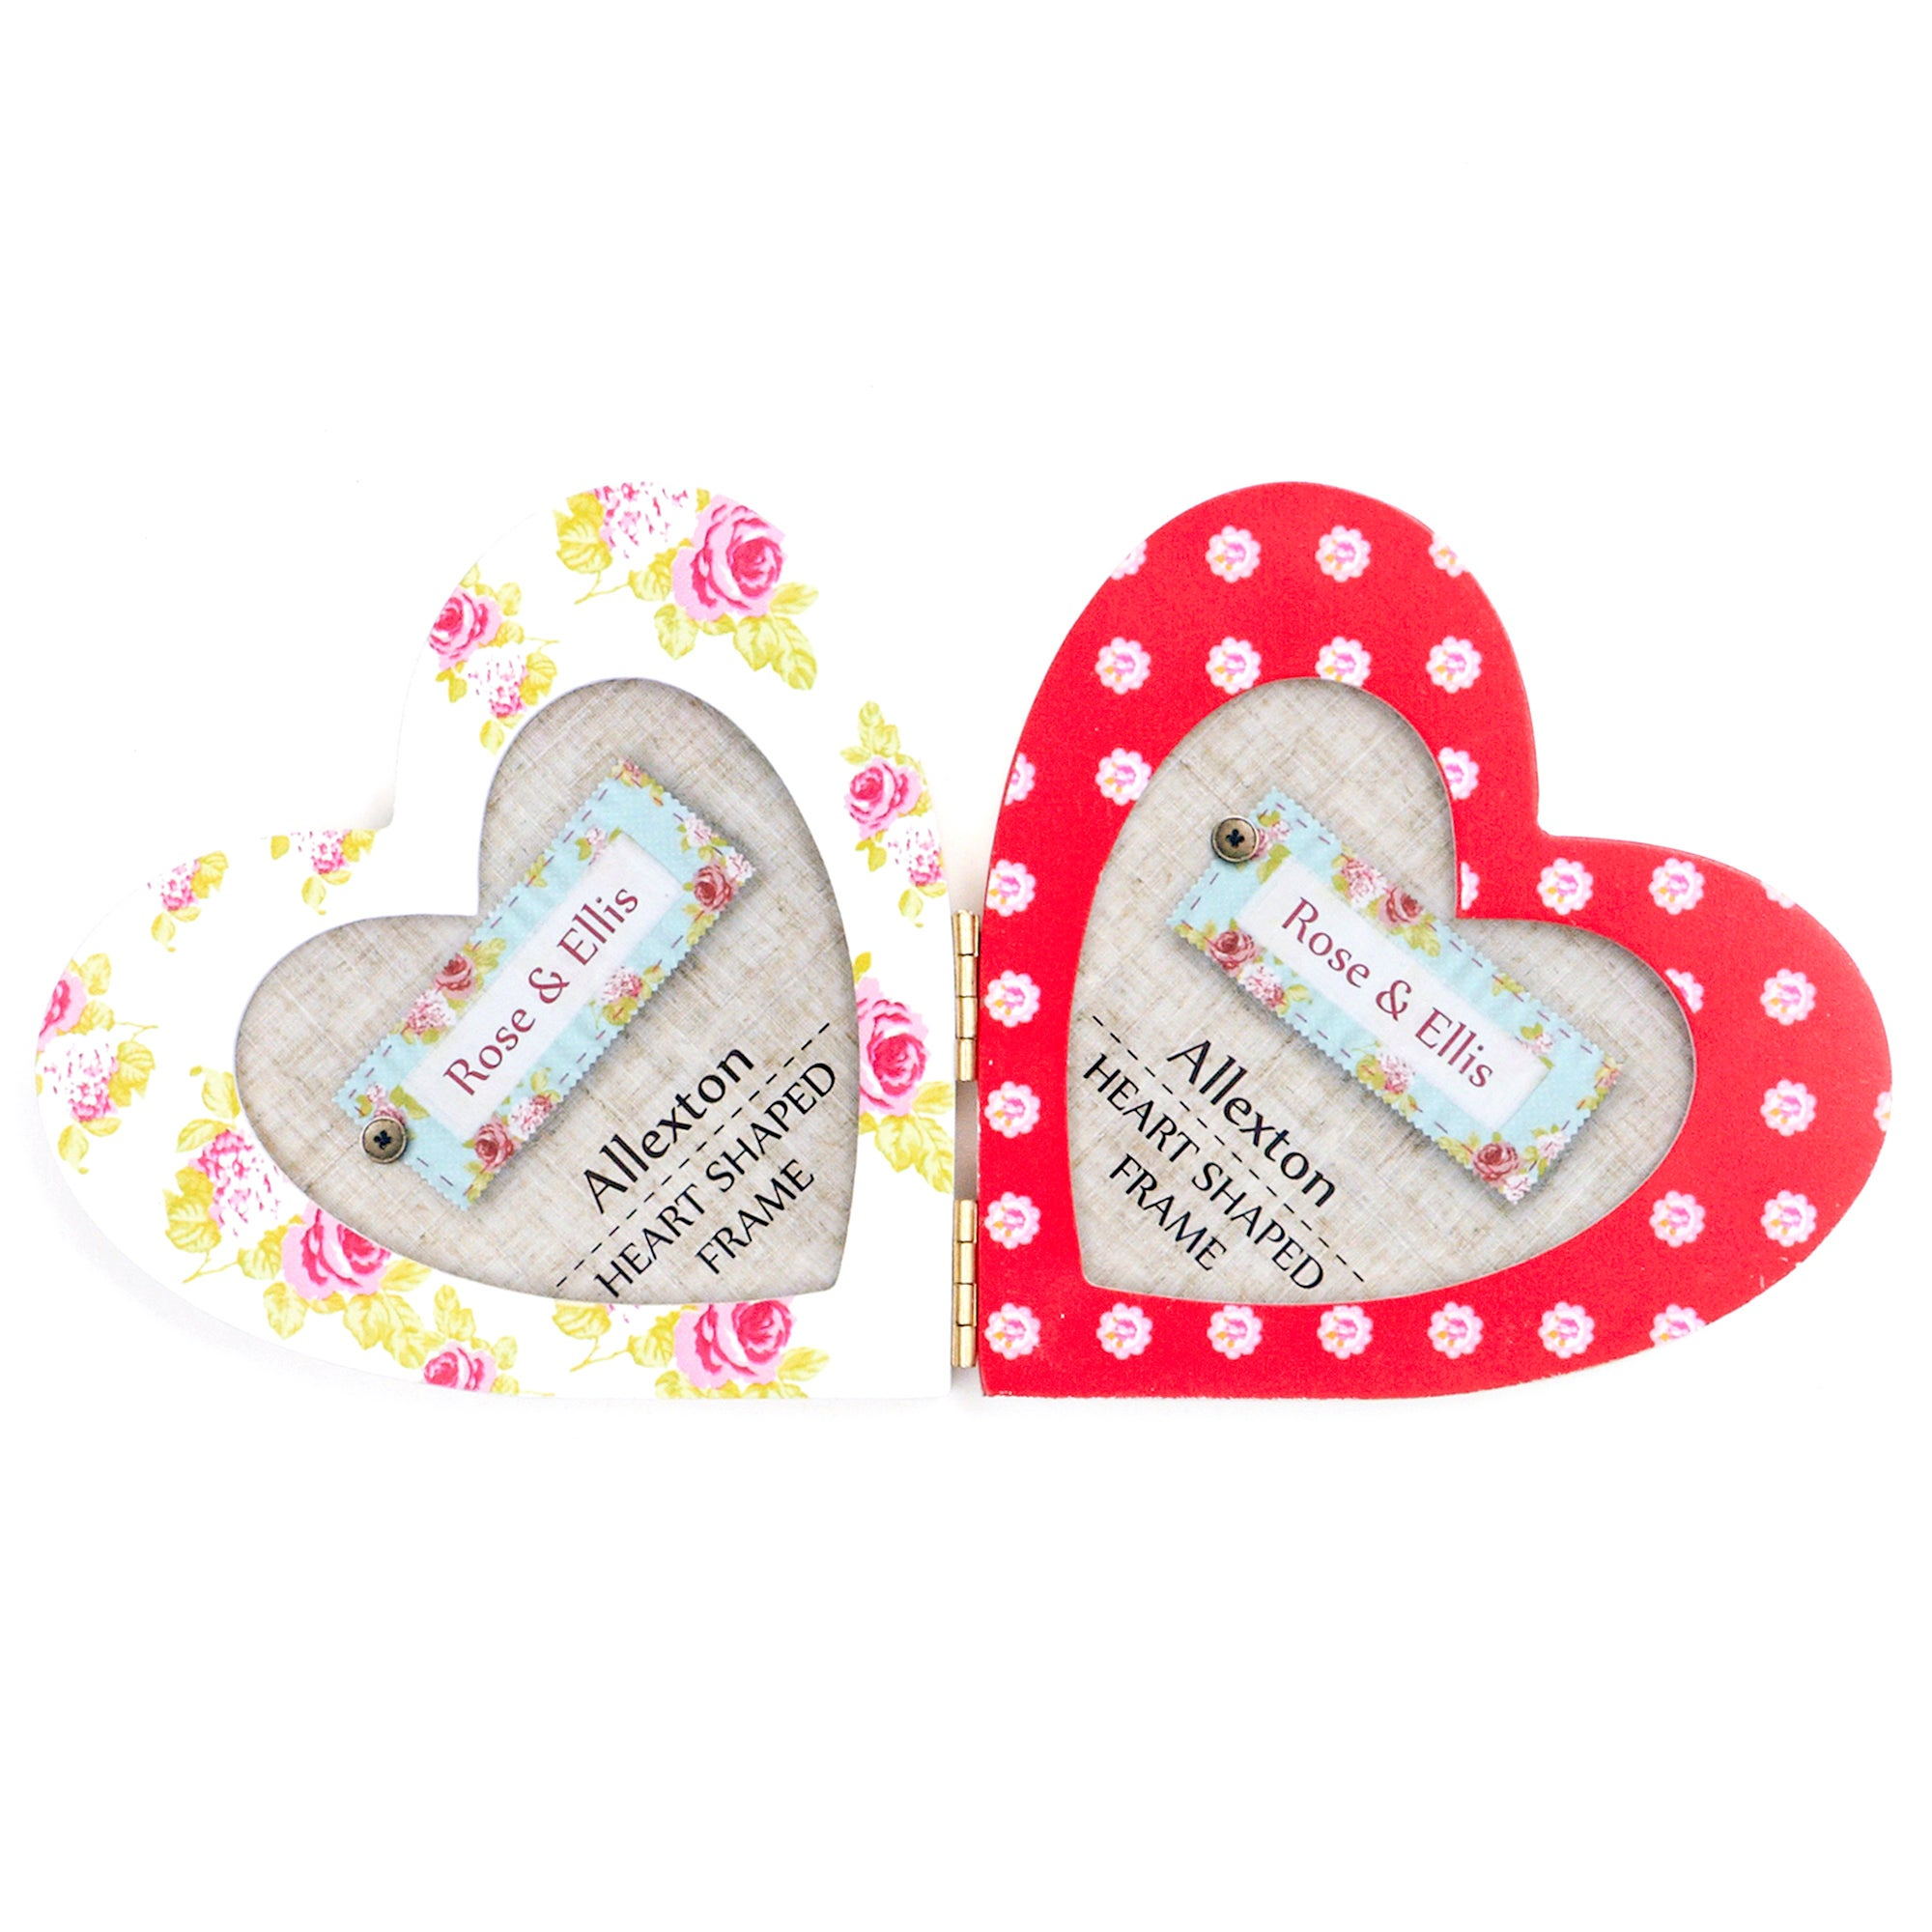 Rose and Ellis Allexton Collection 2 Aperture Heart Shaped Photo Frame